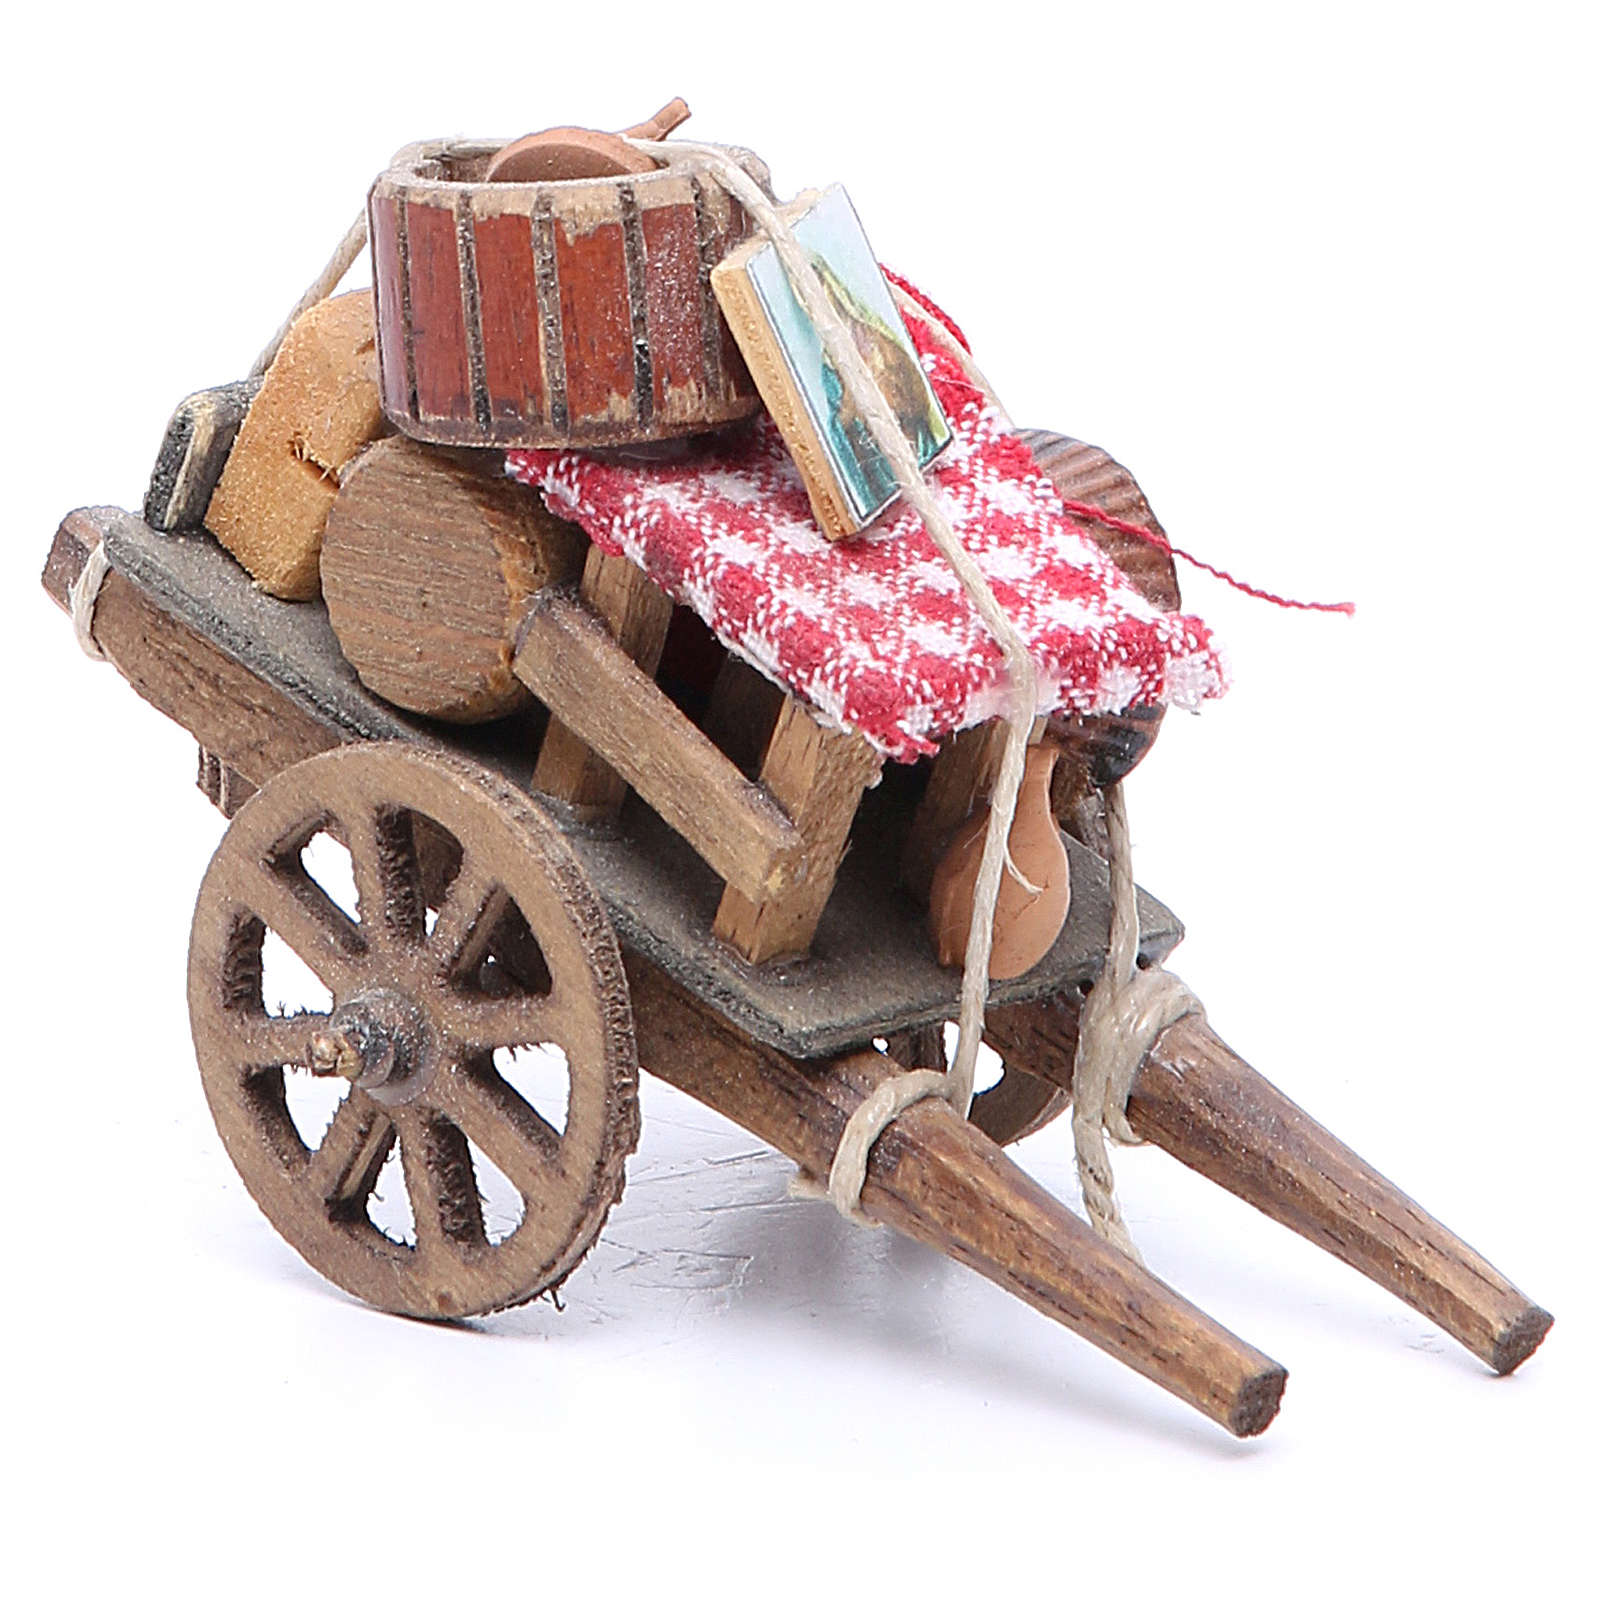 Cart of the evicted for Neapolitan Nativity, measuring 9x12x7cm 4